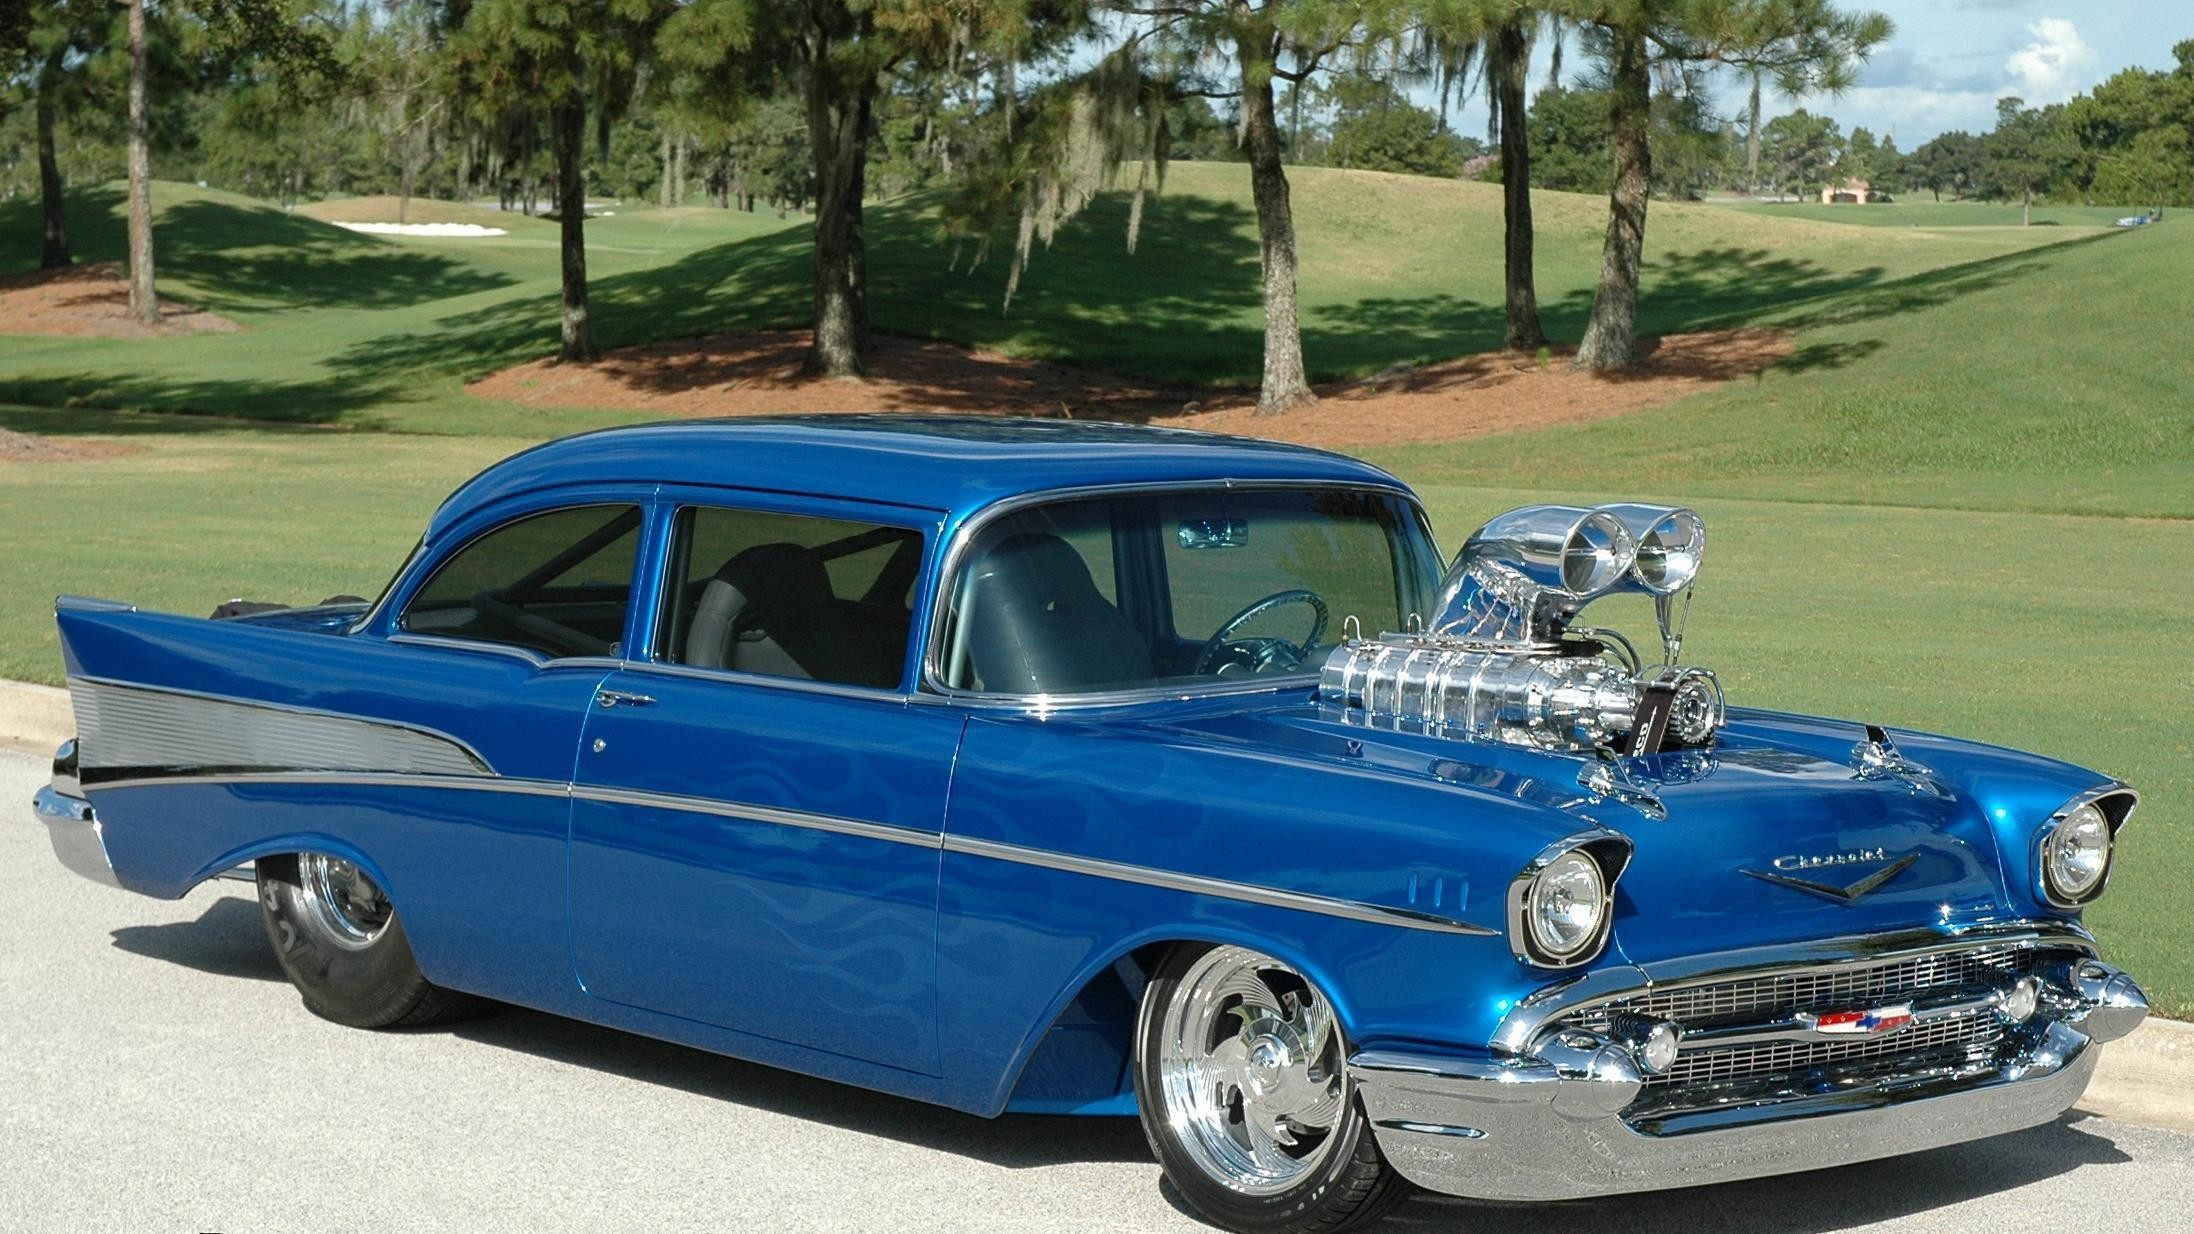 2194x1234 57 chevy bel air hd desktop wallpaper widescreen high car baby walker